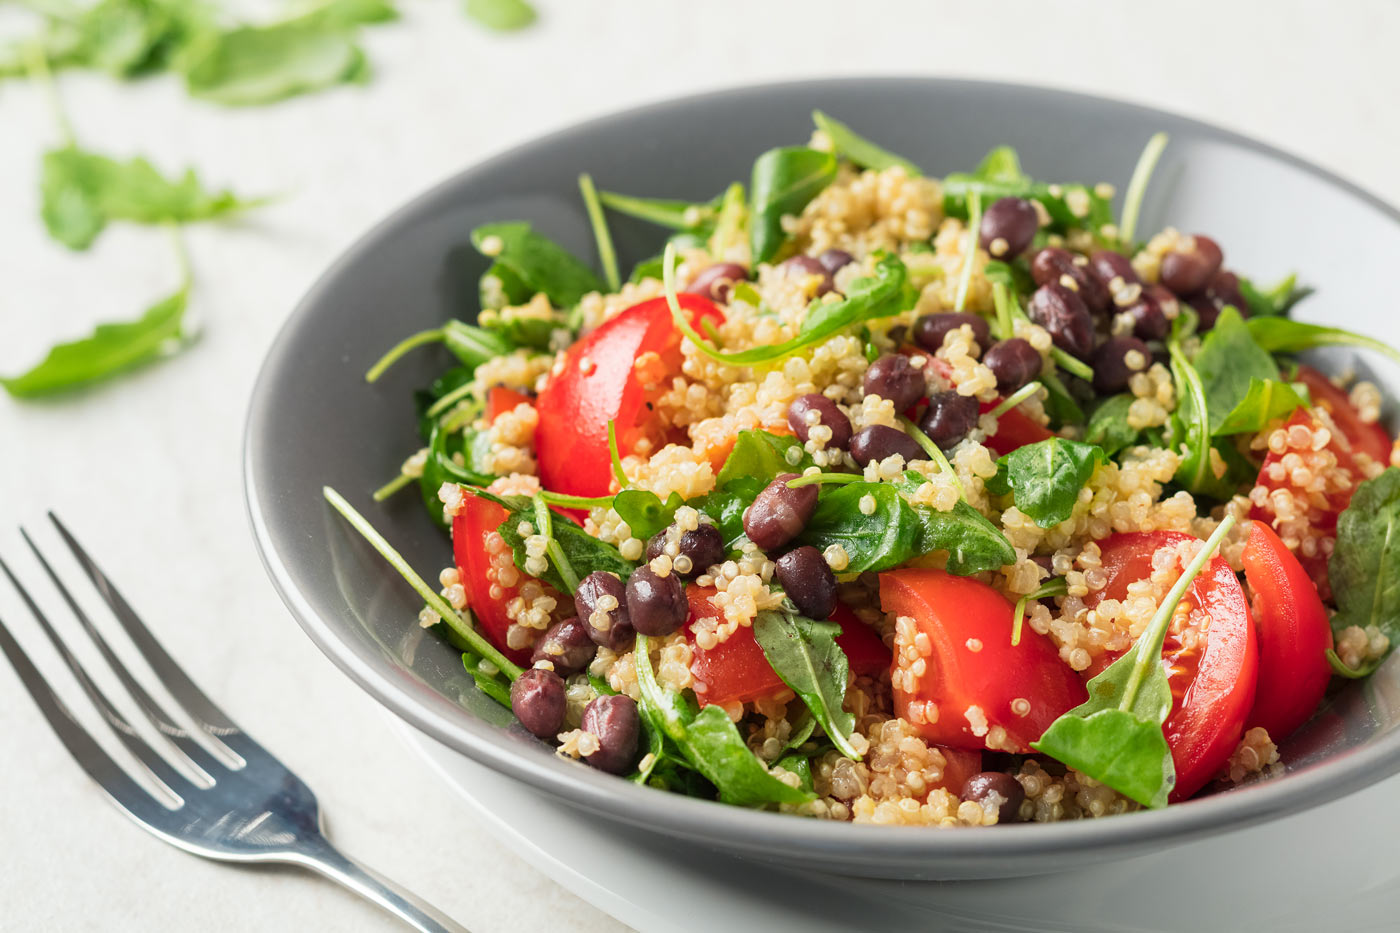 Recipe image of salad with bulgur